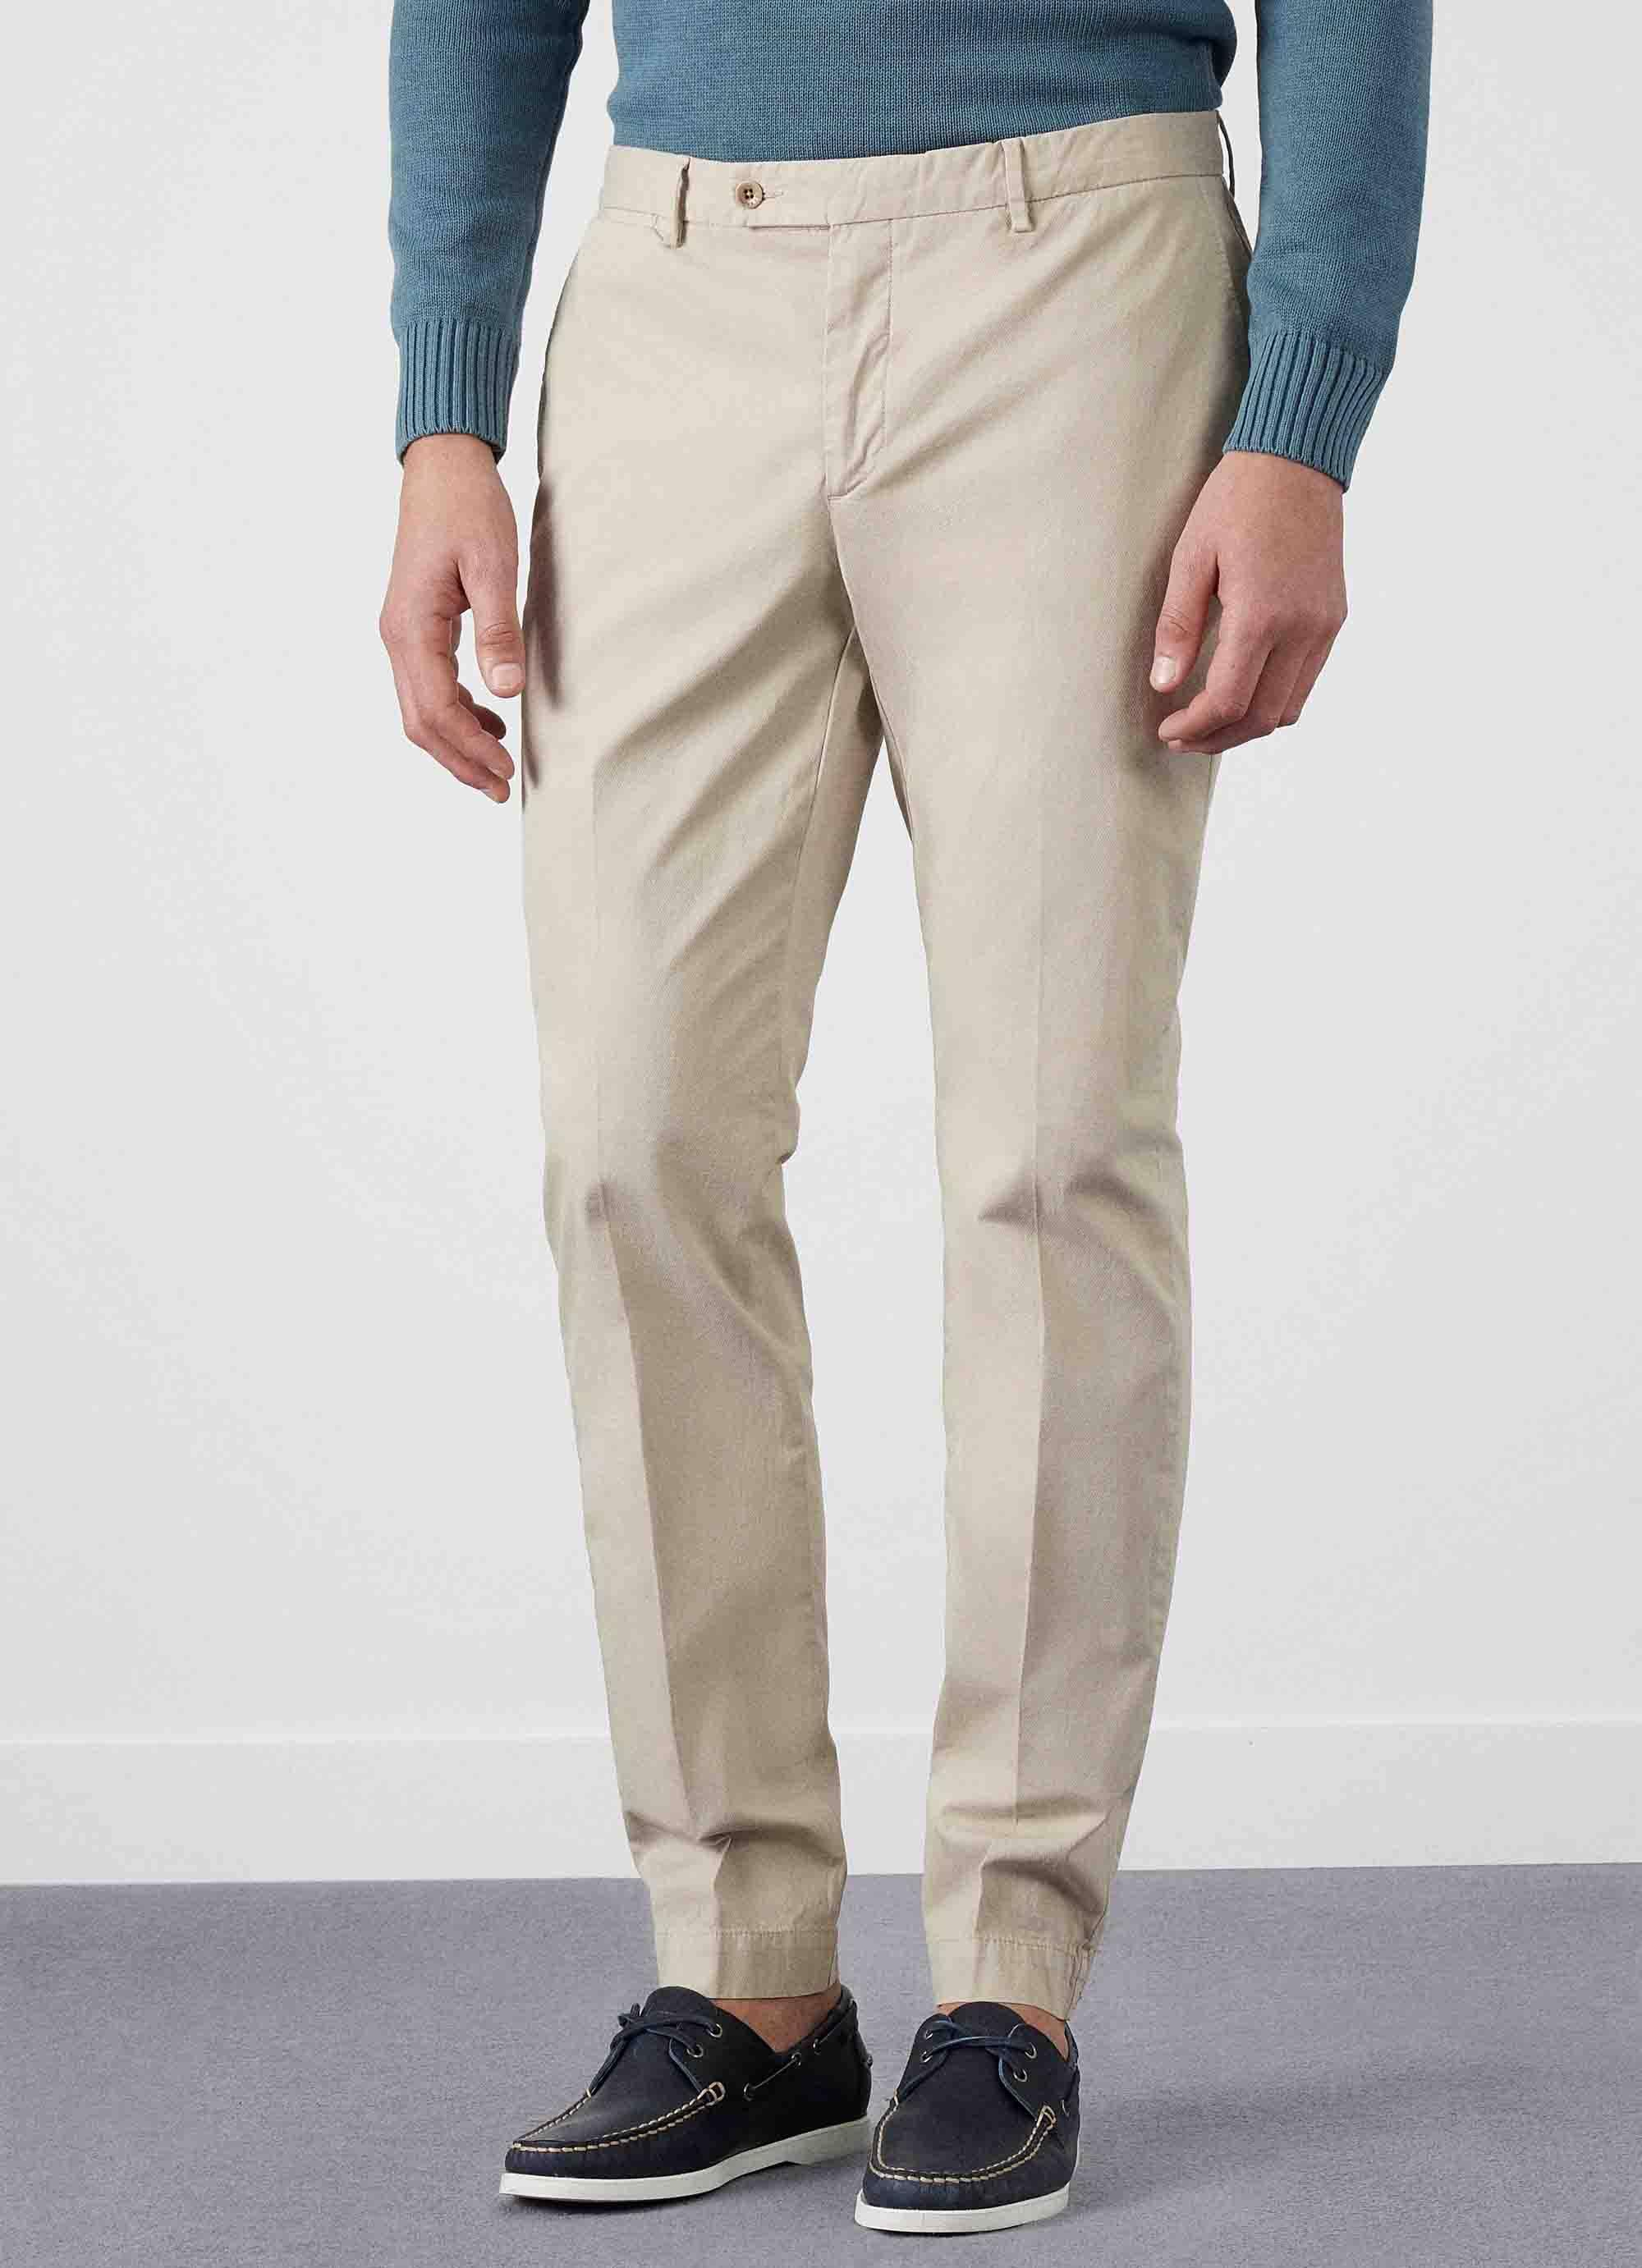 Hommes Colorant Gmt Hackett Pantalon Texture 3zuUX